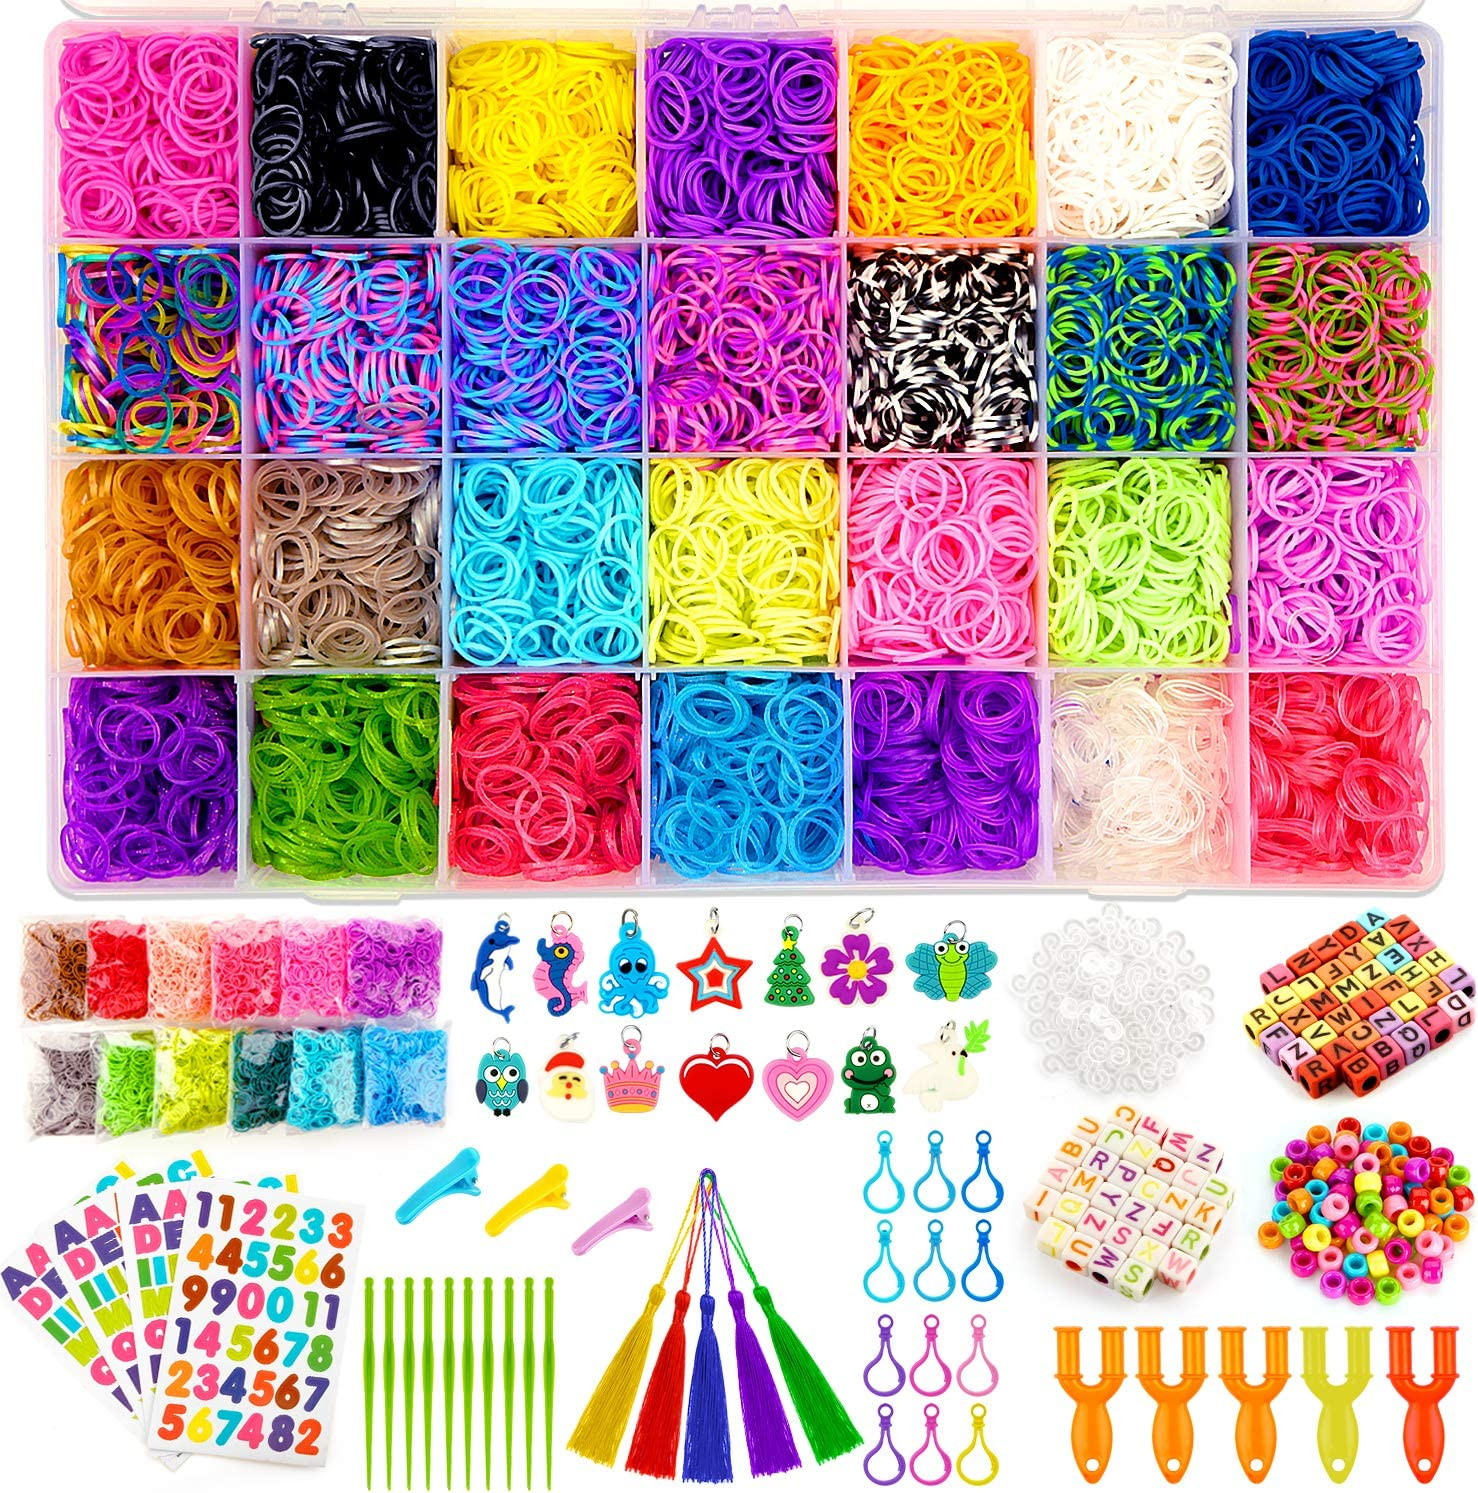 Loom Band refills with 1200 colourful rubber bands 48 x S clips 2 x hooks